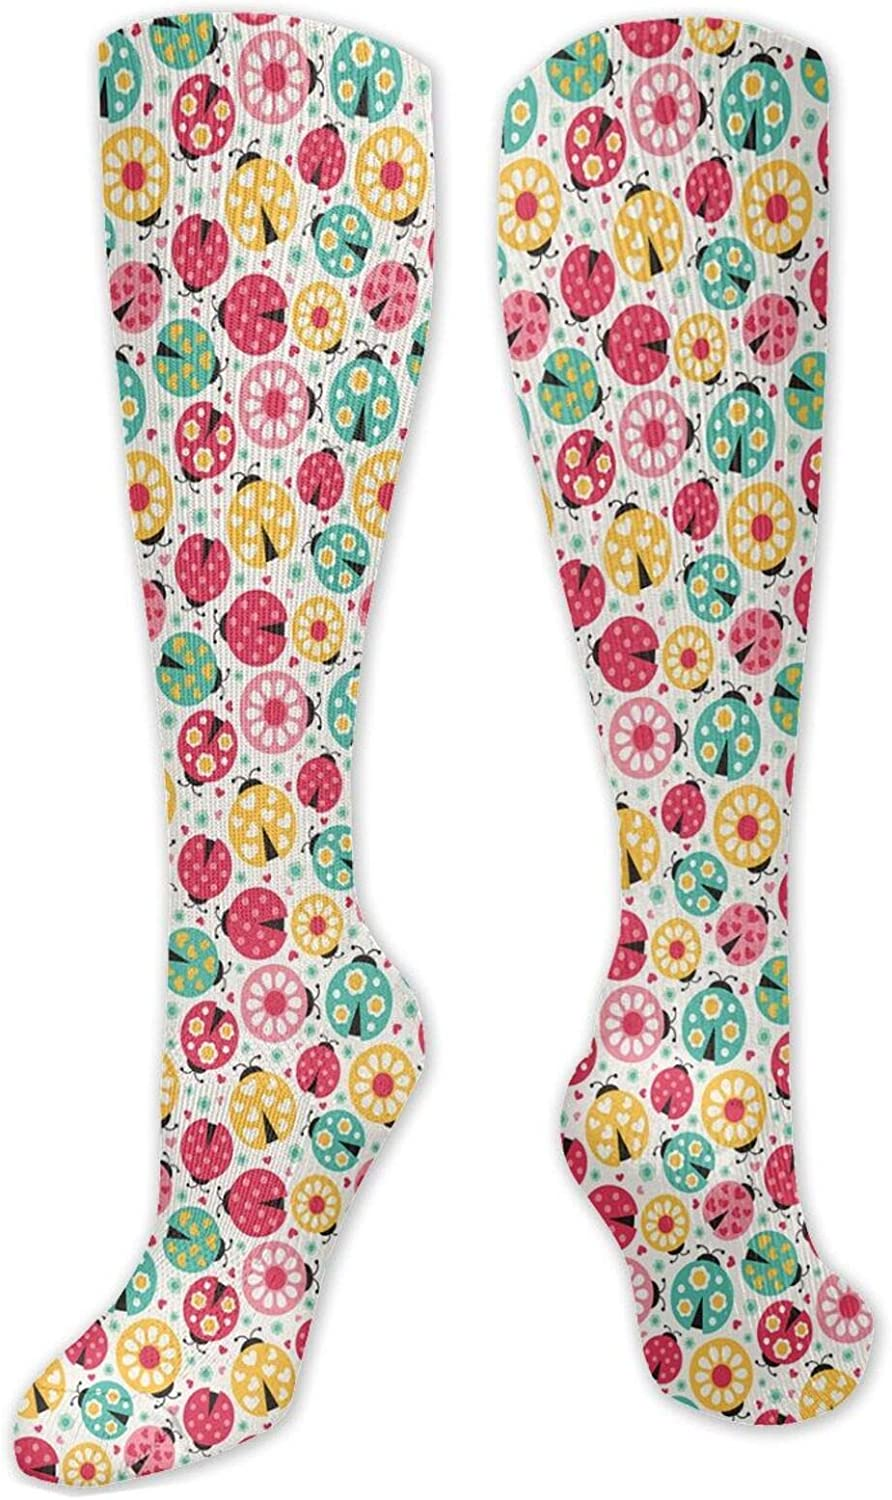 Compression High Max 89% OFF Socks Abstract Spring new work Bug With Many Hearts Differents